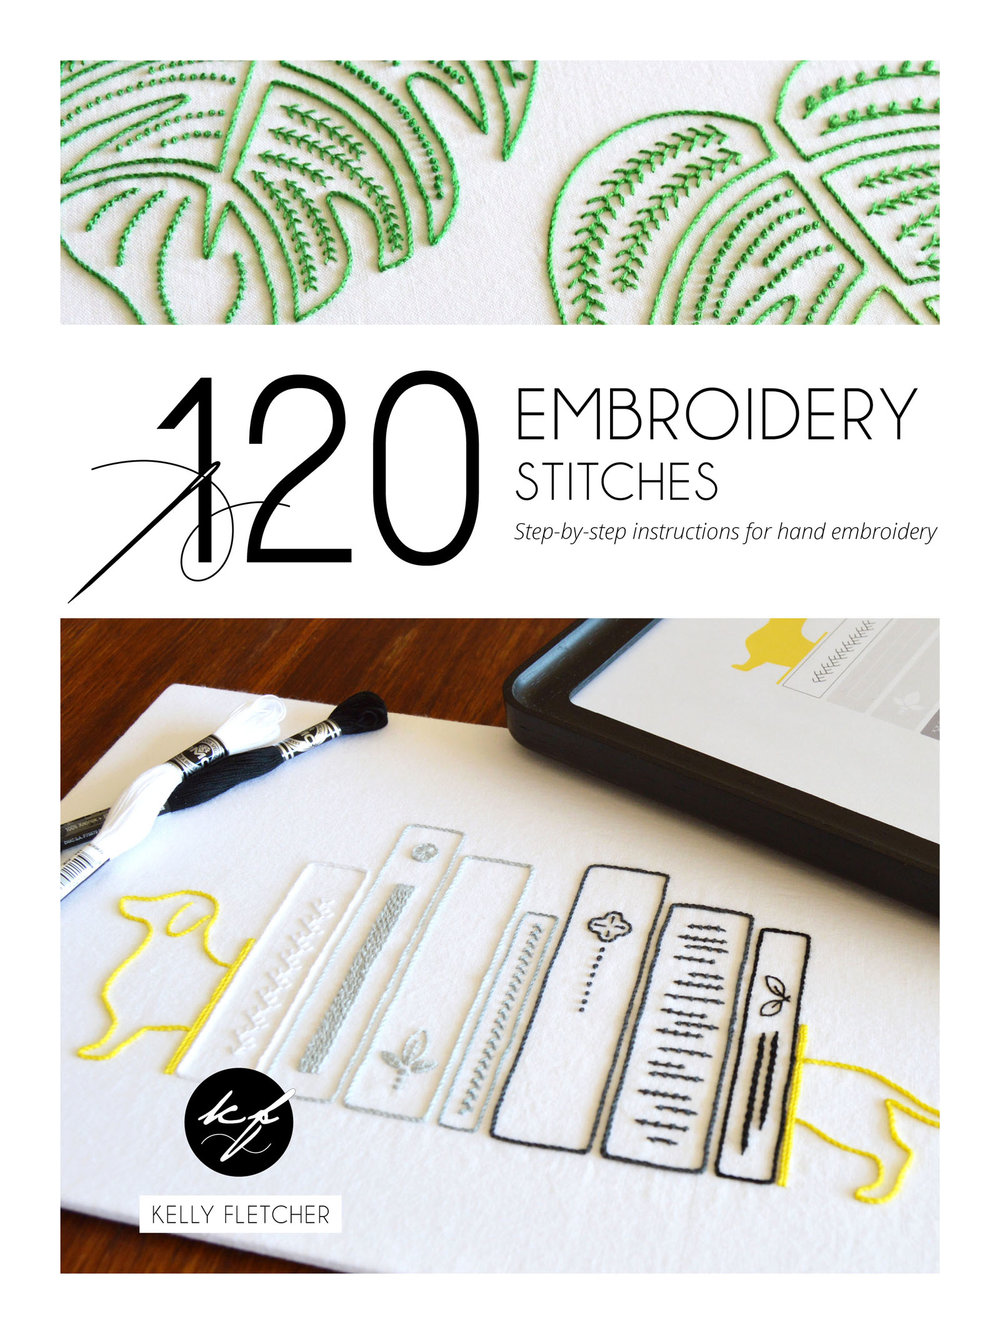 120EmbroideryStitches18_KellyFletcher.jpg